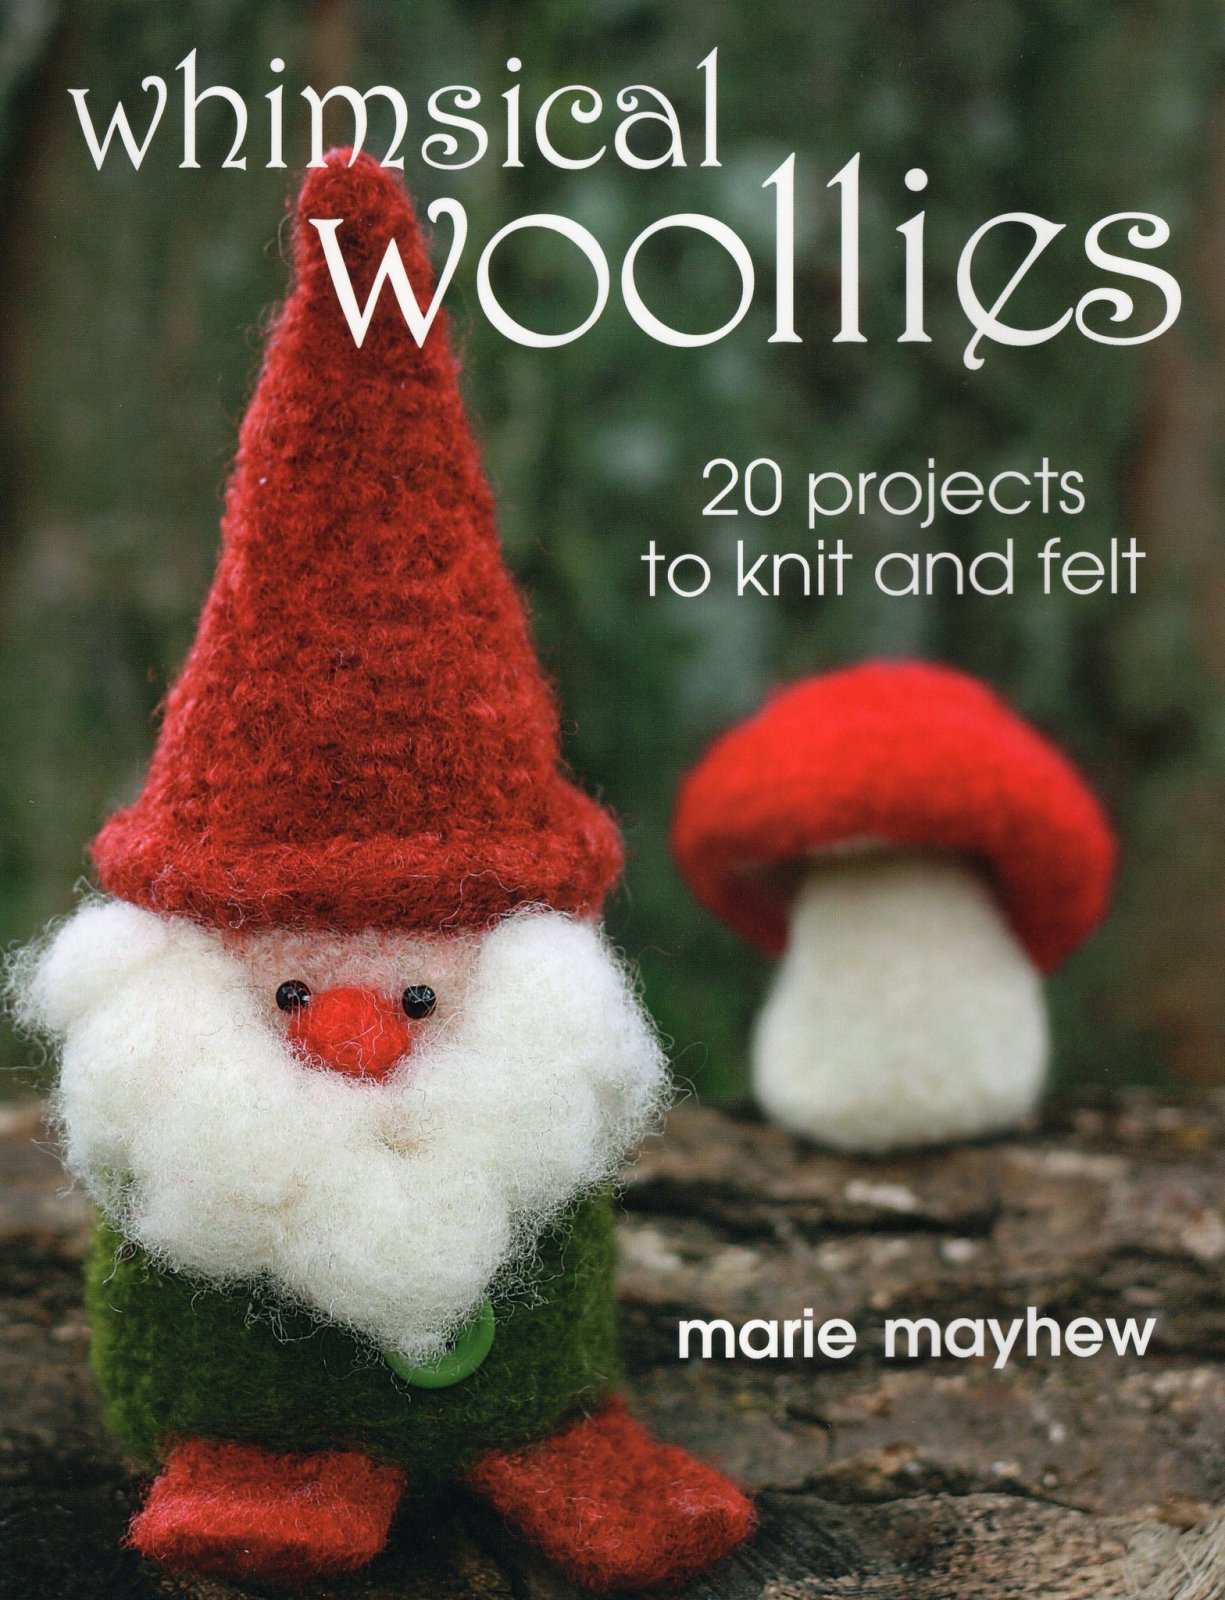 Whimsical Woollies by Marie Mayhew